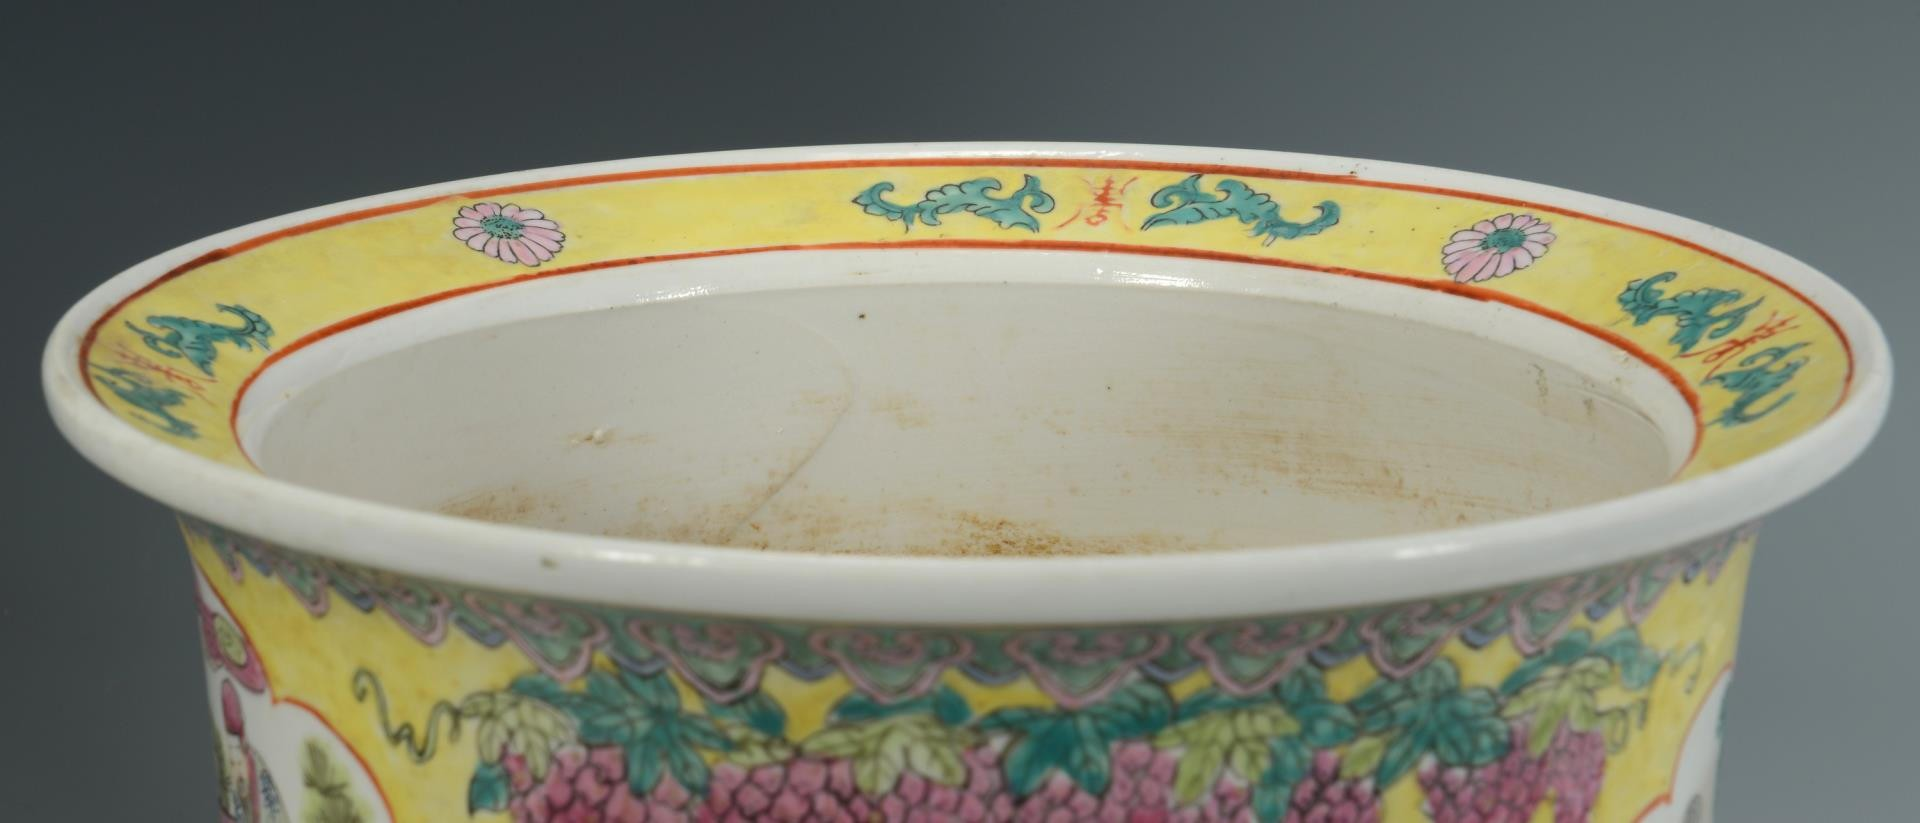 Lot 3594242: 2 Chinese Ceramic Decorative items